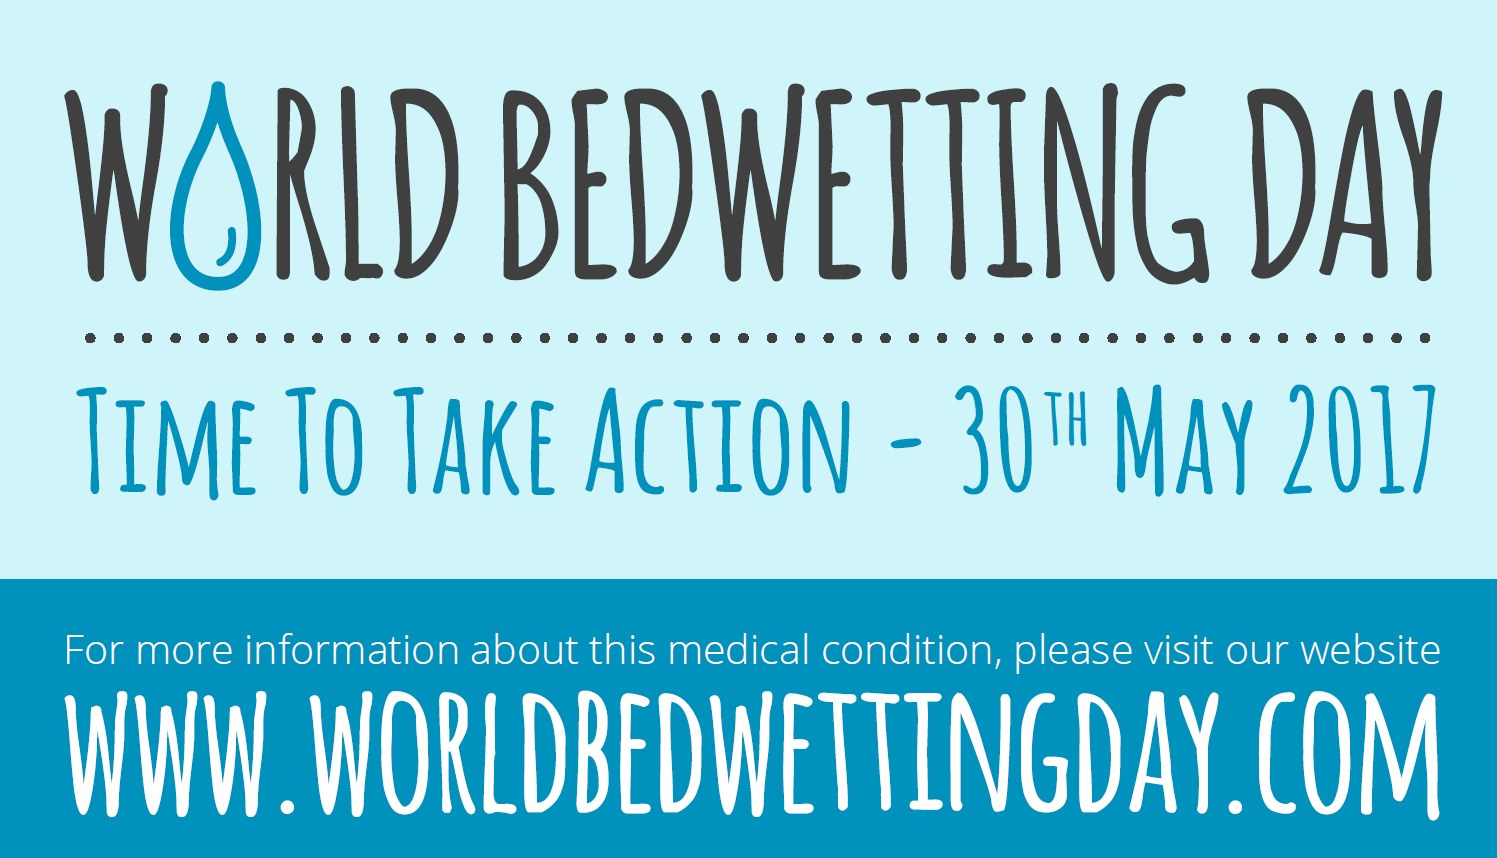 ev world bedwetting day 2017